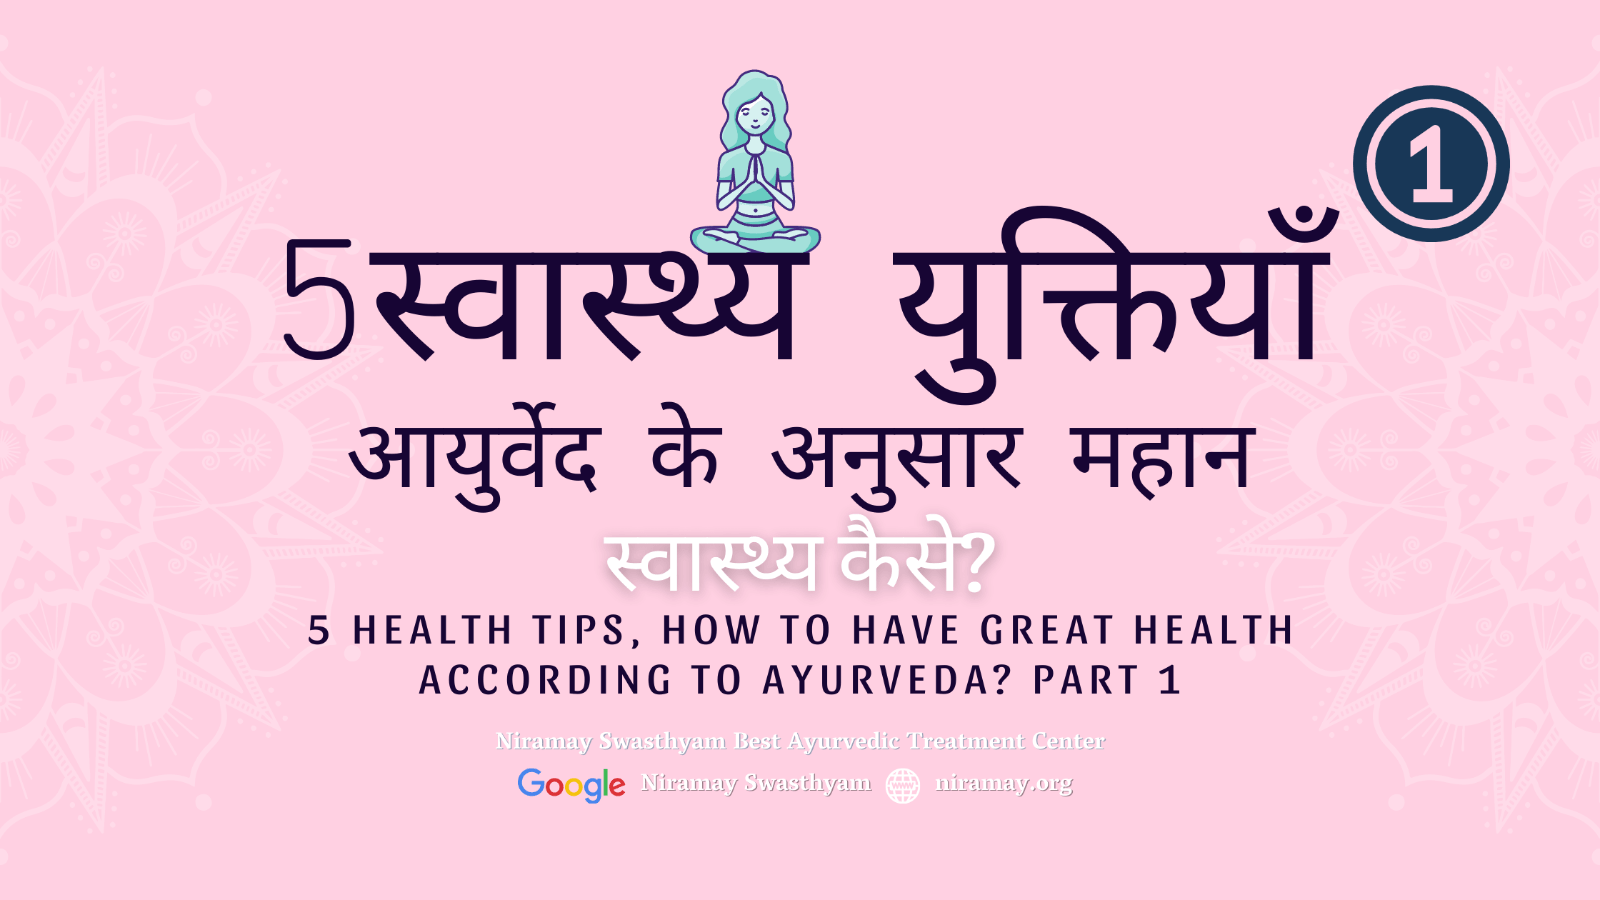 5 Health Tips, How to Have Great Health According to Ayurveda? Part 1